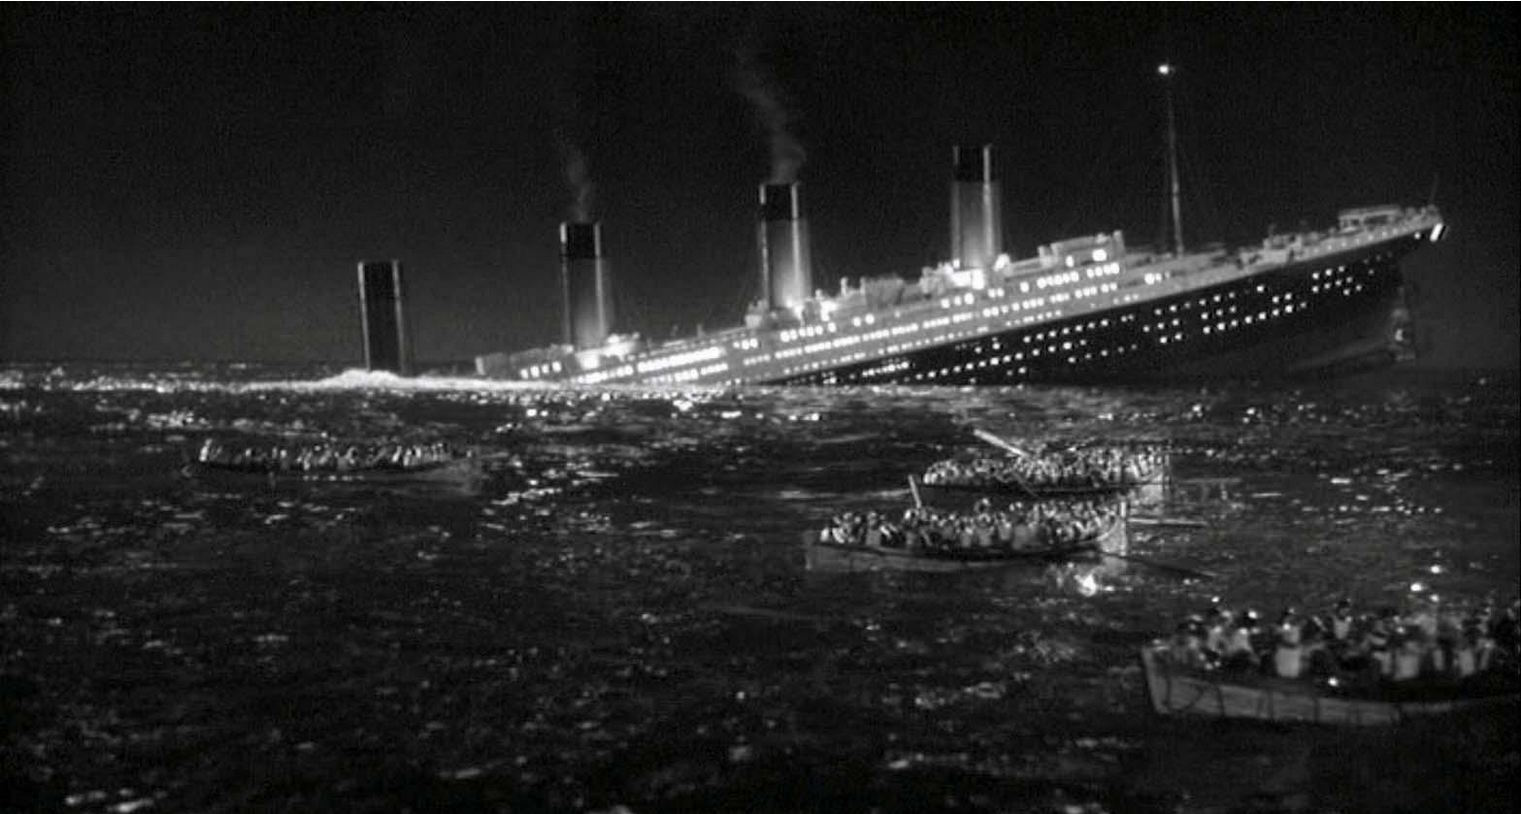 The RMS Titanic sinks in TITANIC (1943)